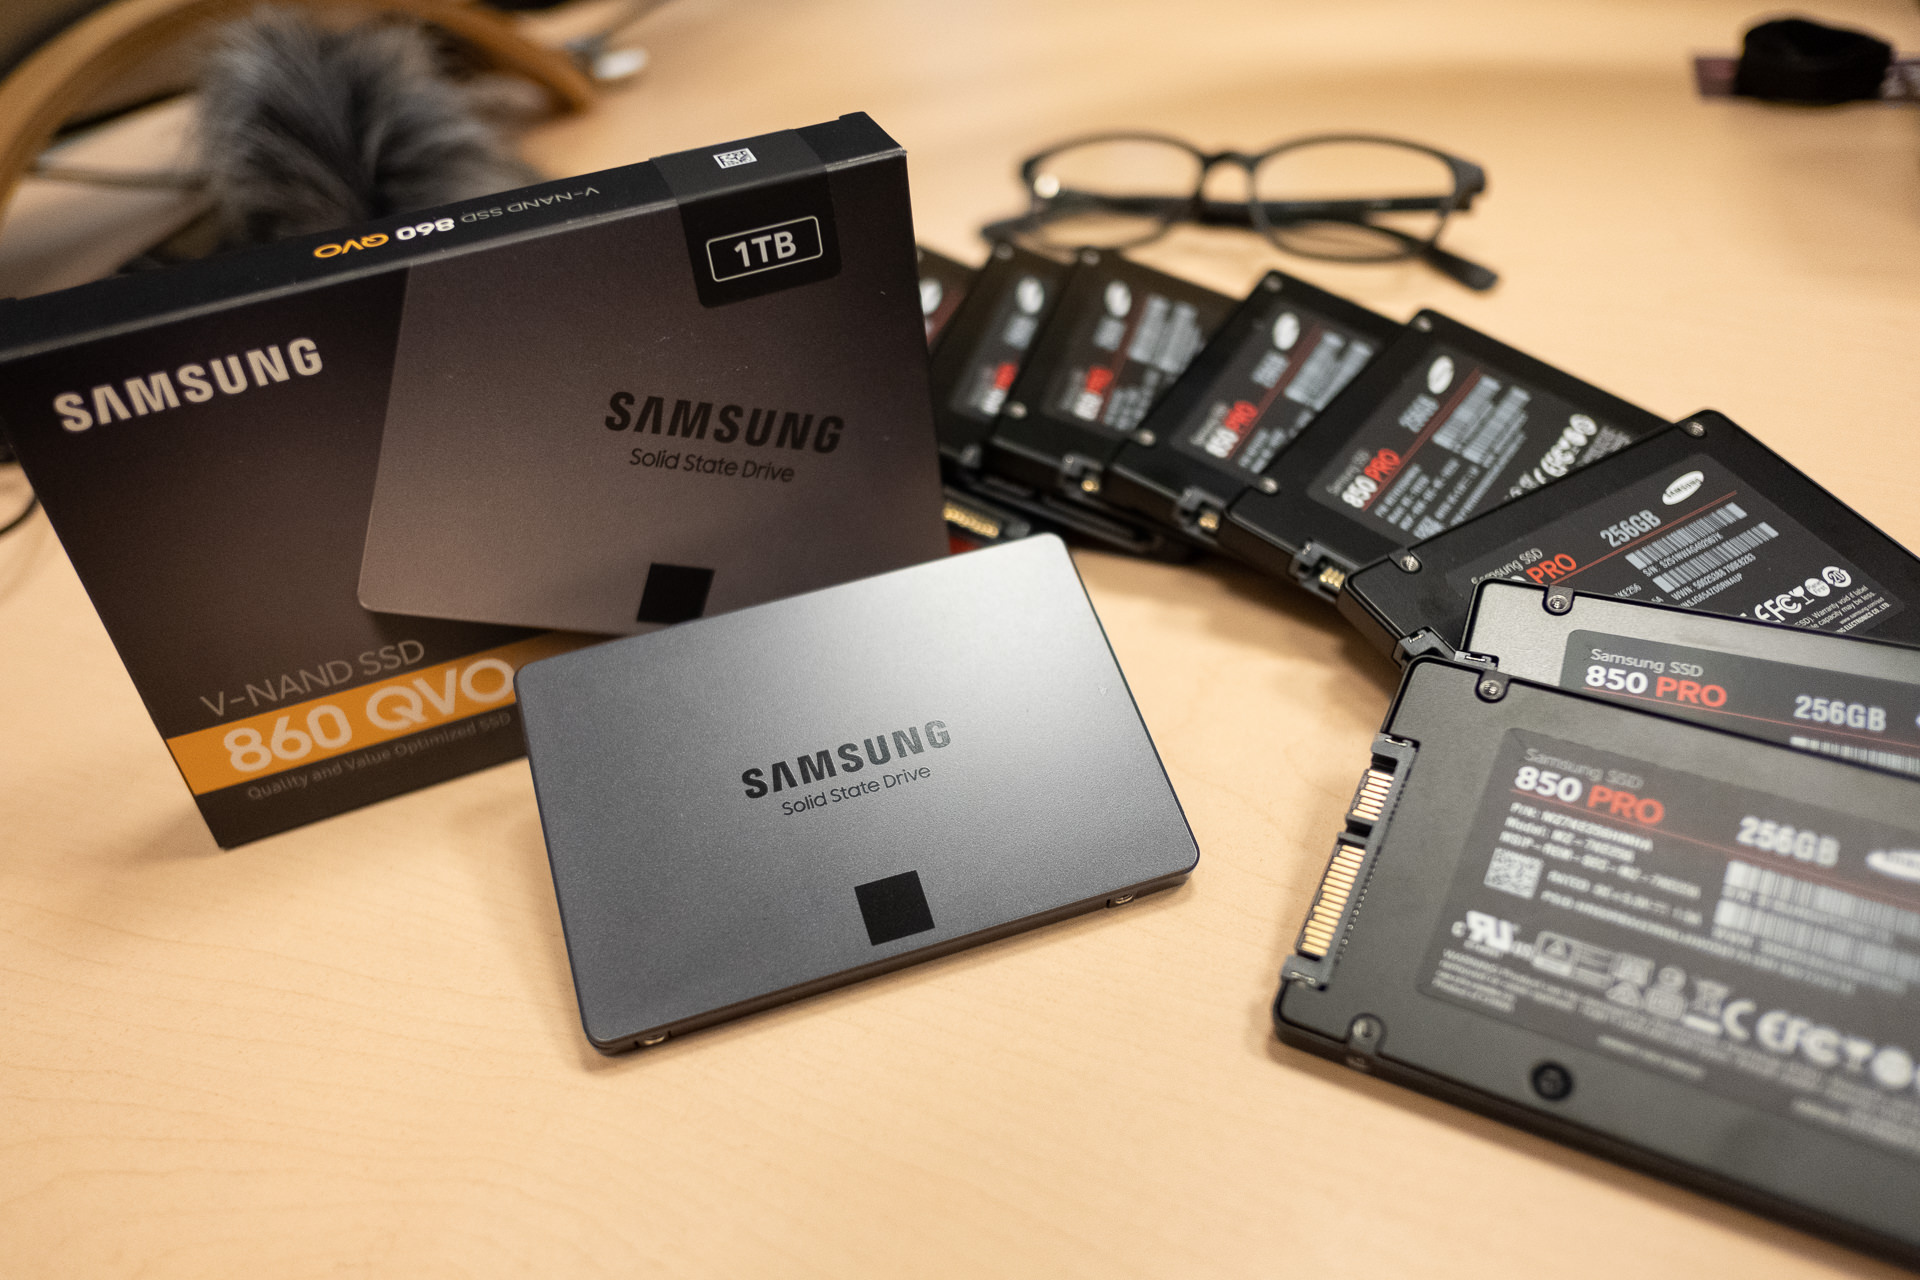 Getting Samsung's 860 QVO solid state hard drive is a no